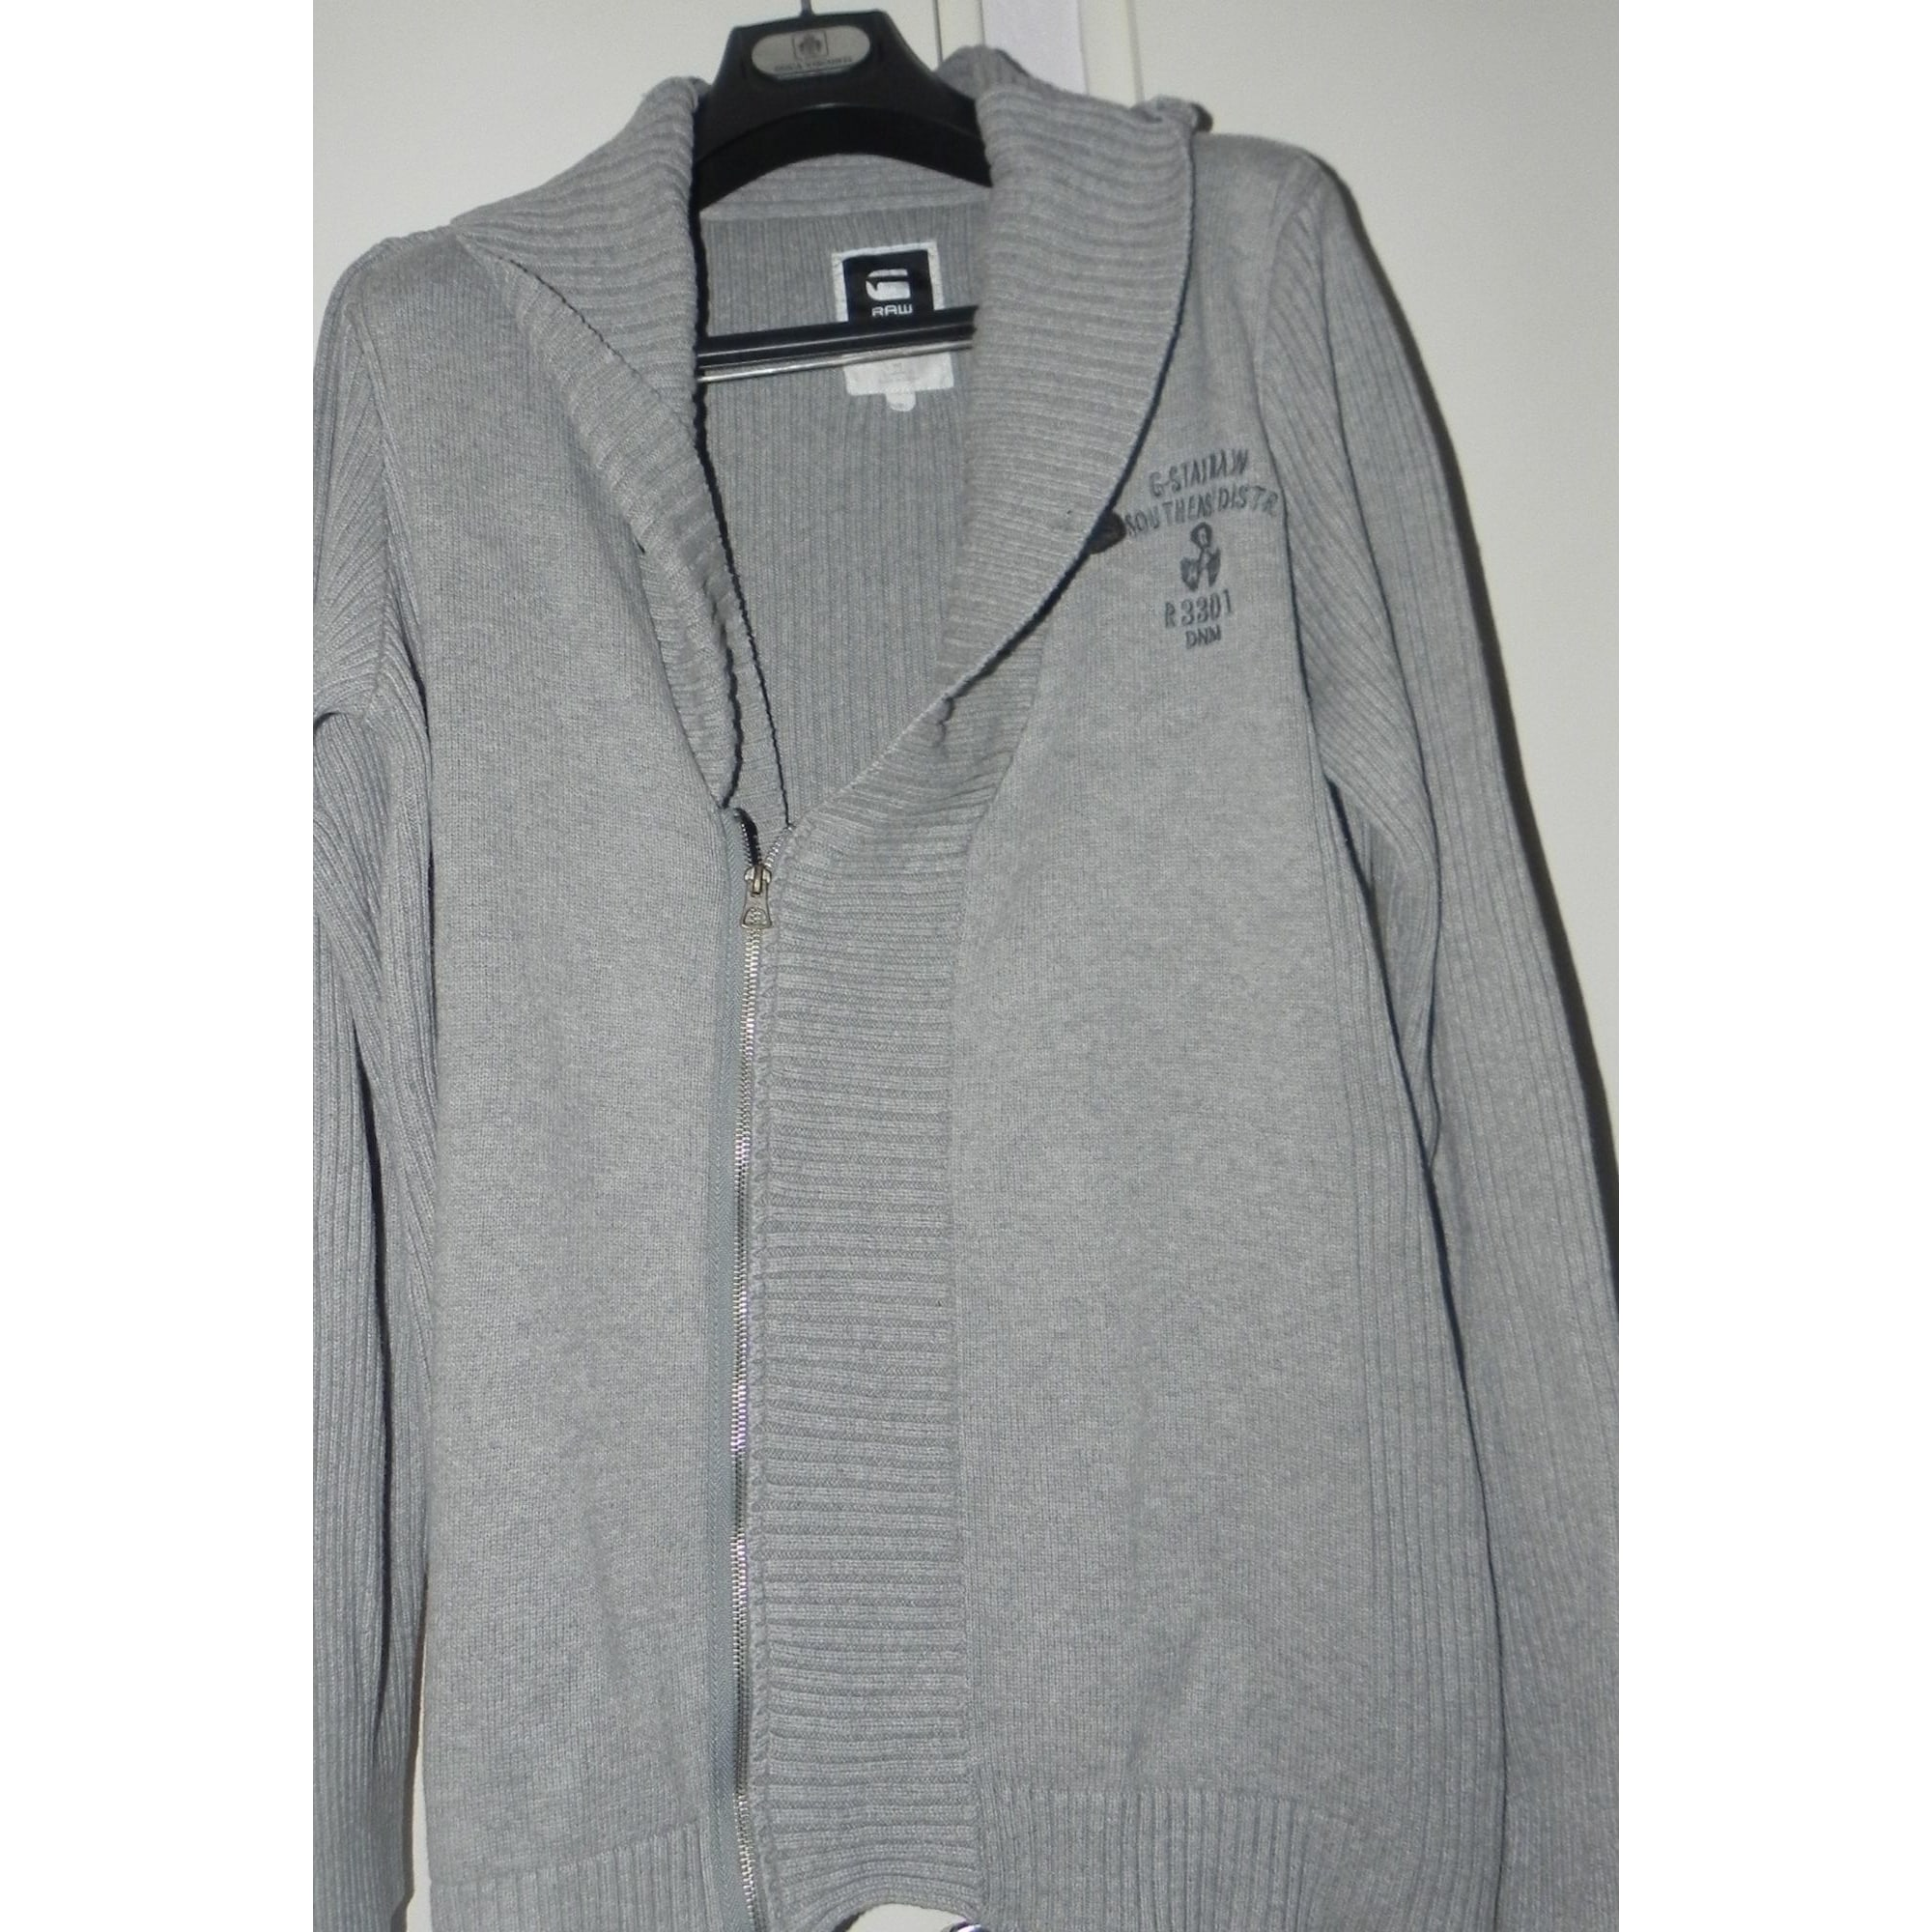 Gilet, cardigan G-STAR Gris, anthracite